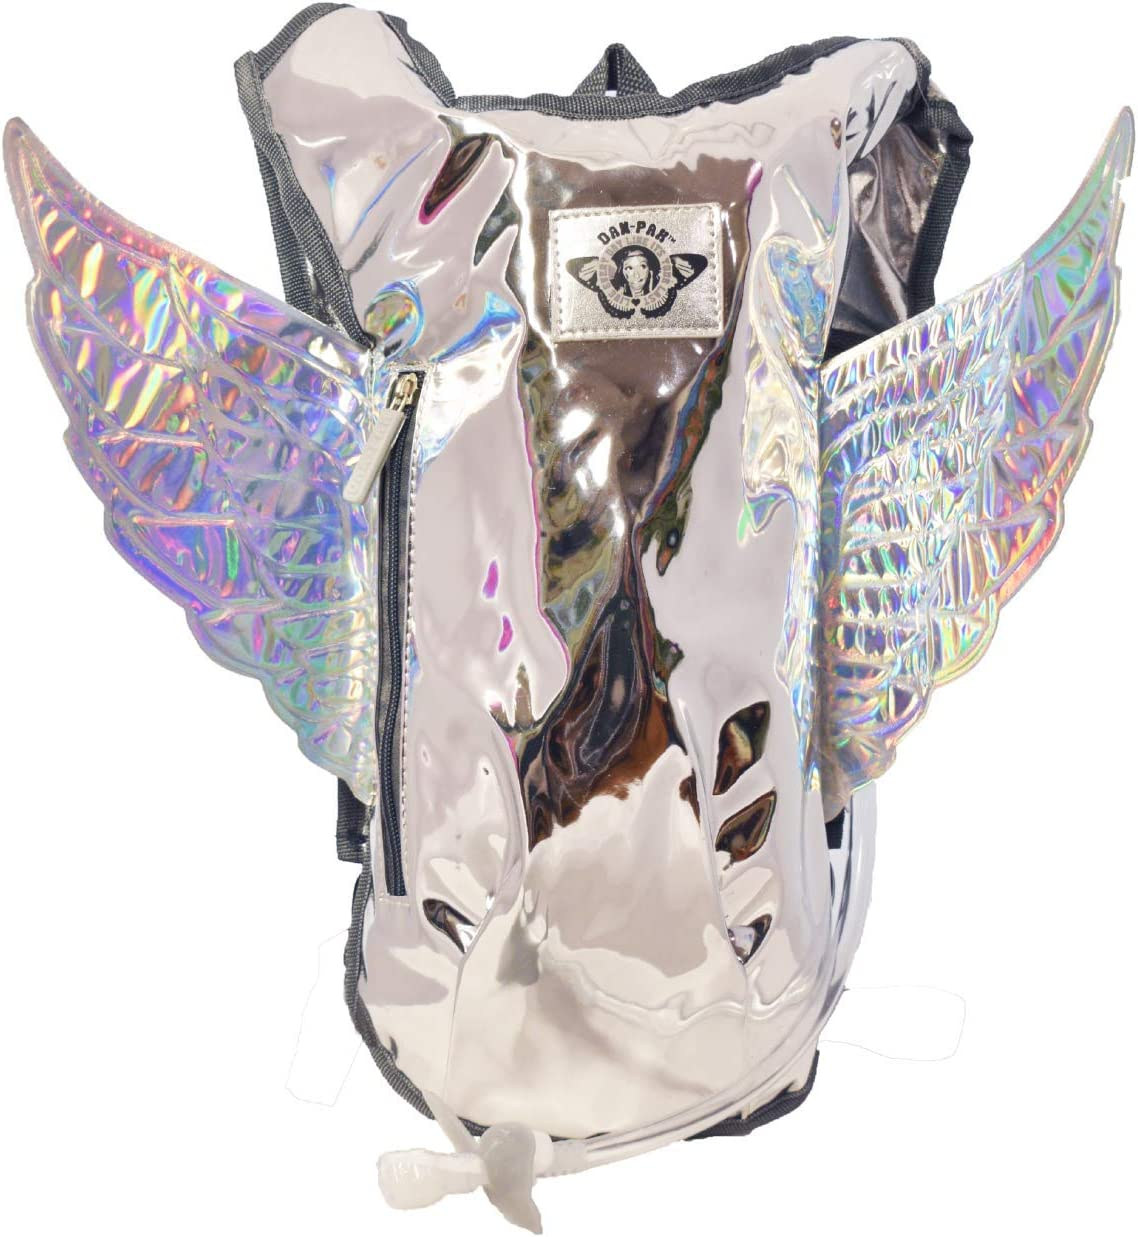 Dan-Pak Rave Hydration Pack 2l- Pegasus -Silver Mirror Bag with Holographic Wings.